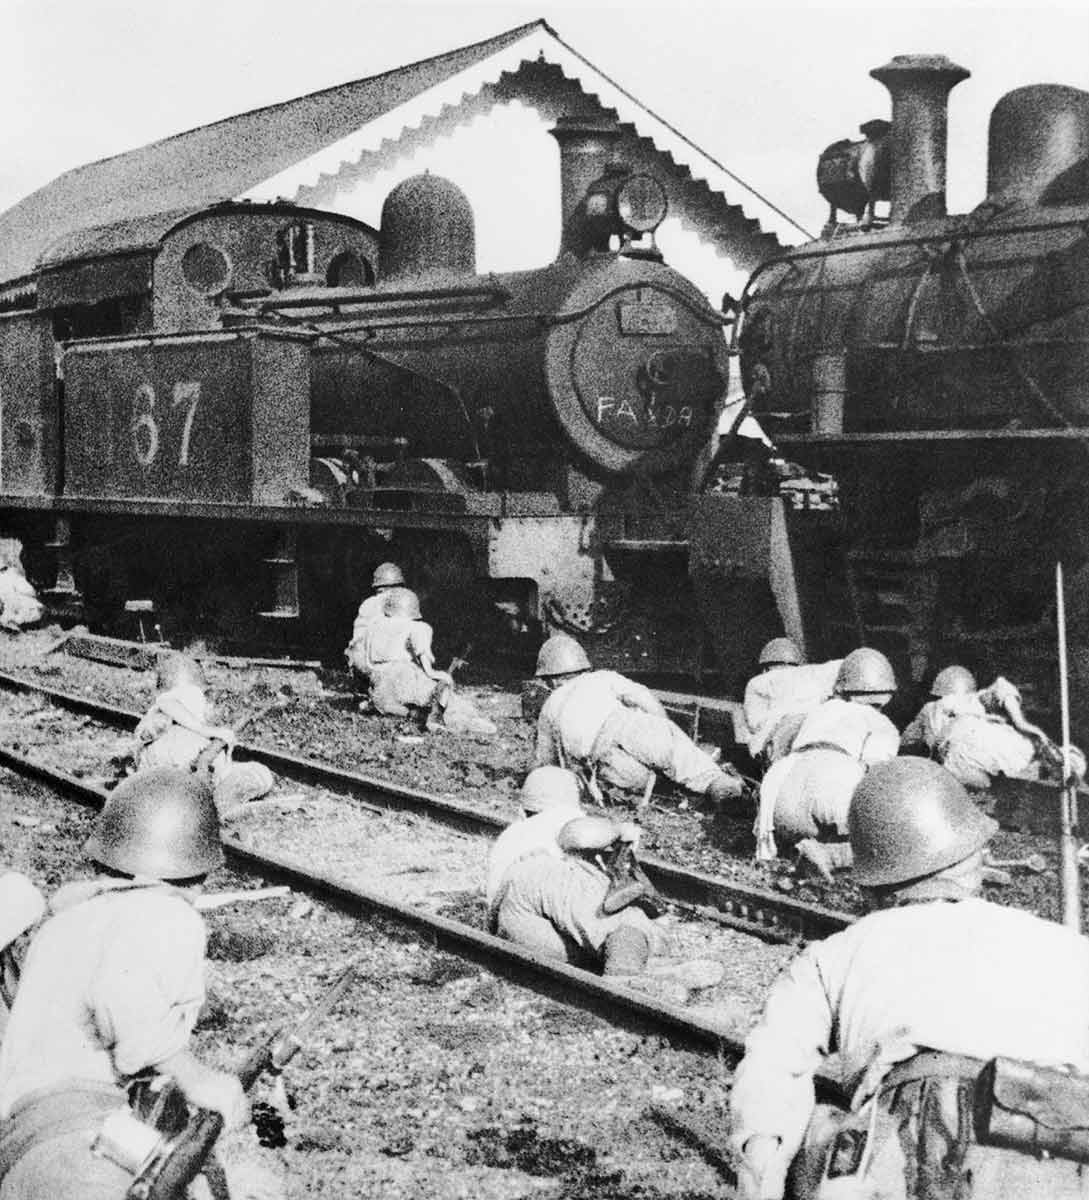 Soldiers crawling towards a steam engine. - click to view larger image